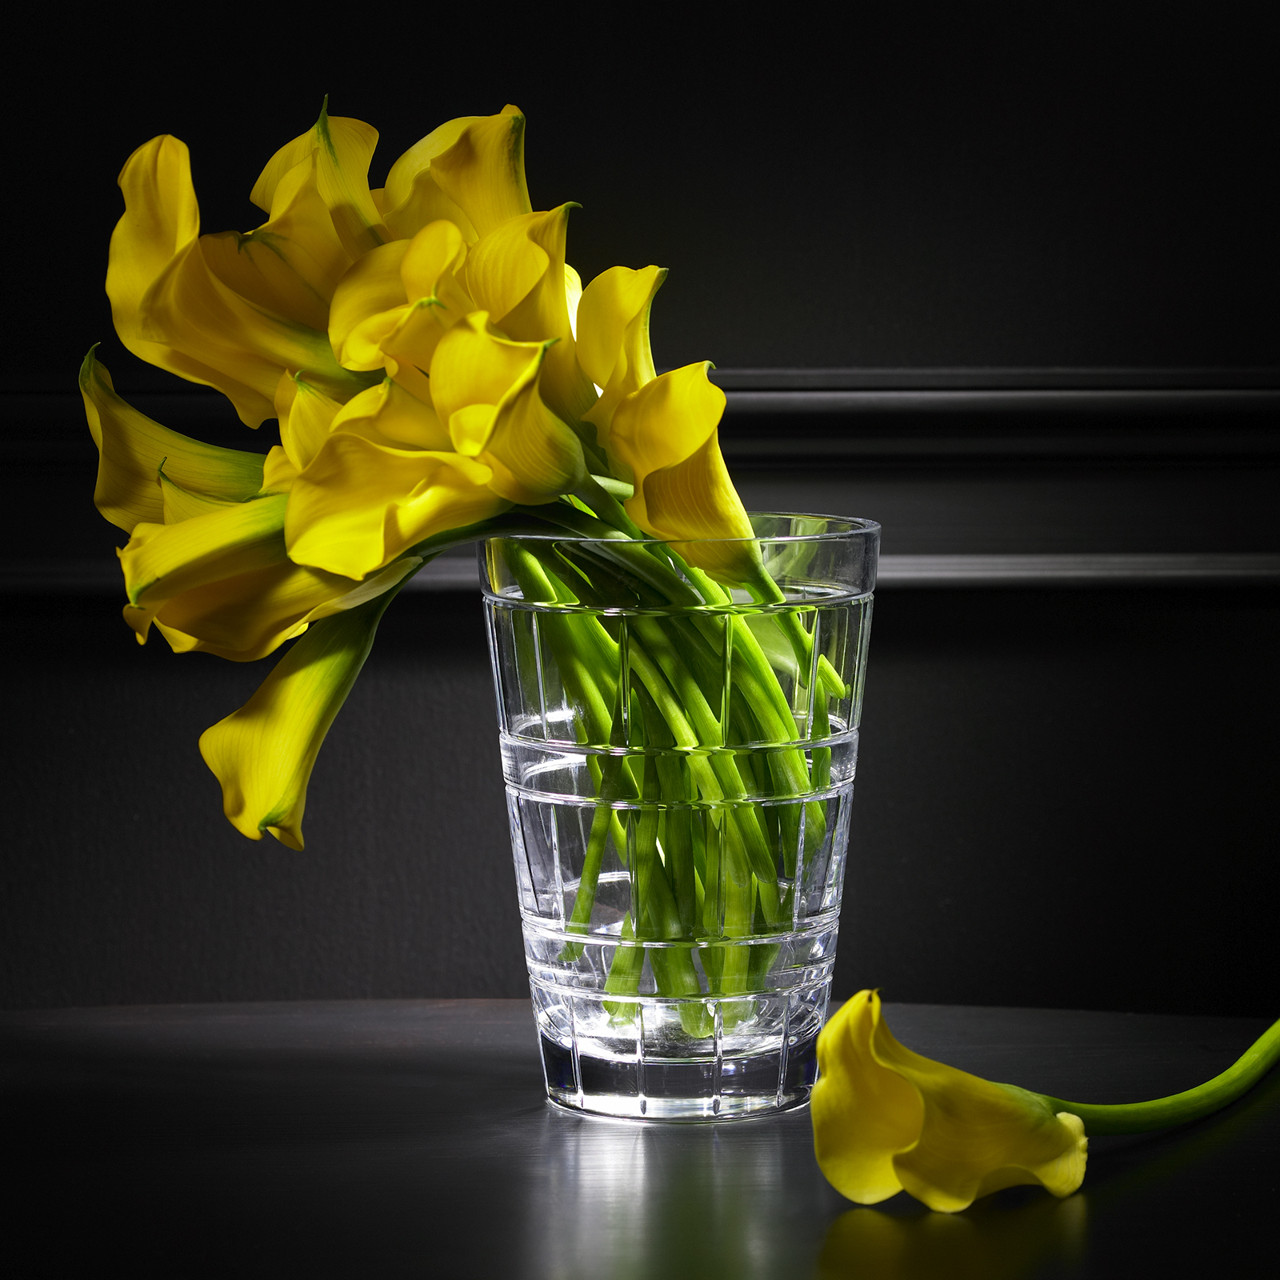 lifestyle puzzle vase of cara howe photography still life intended for still life